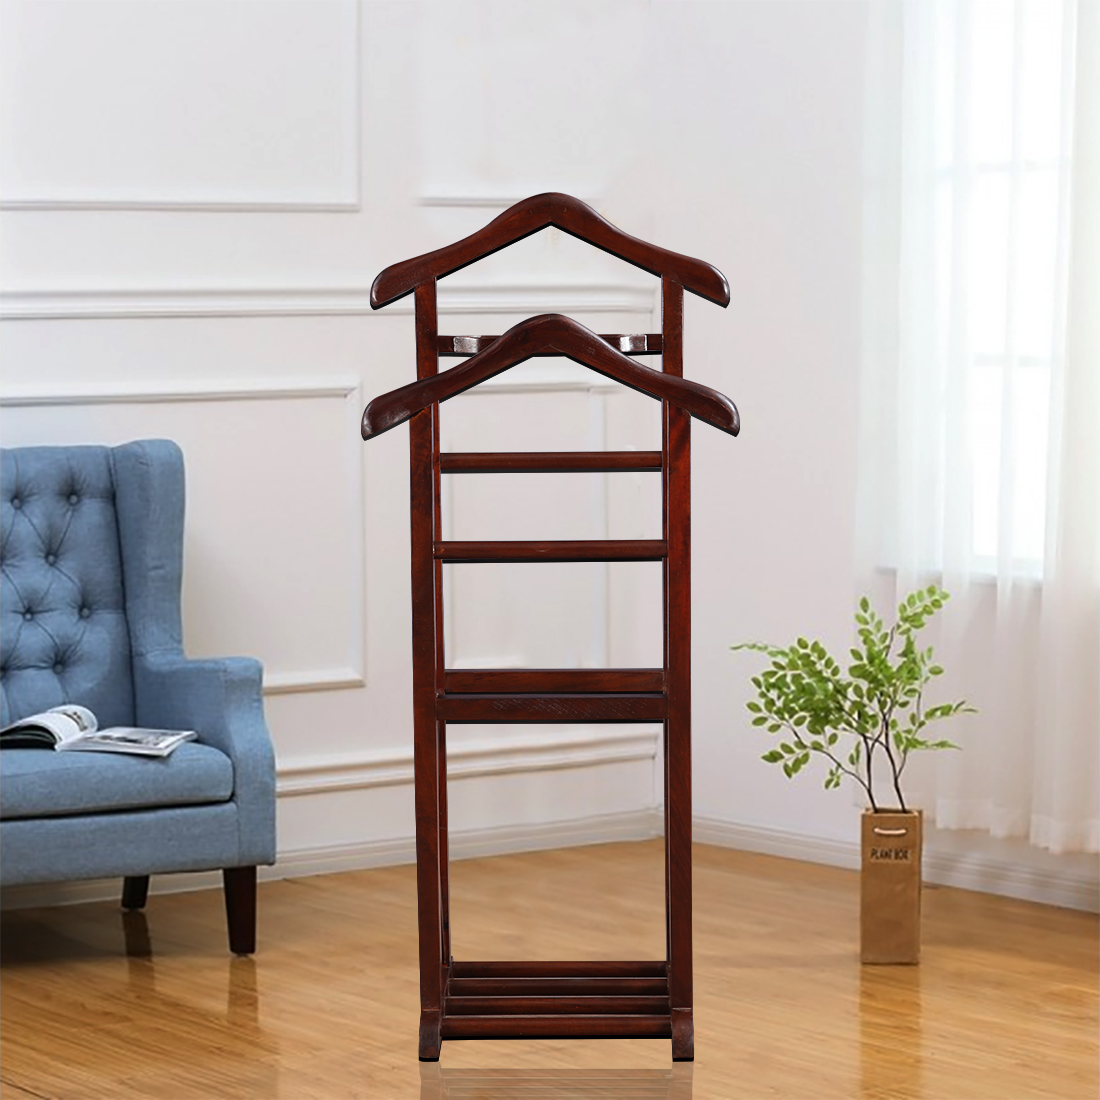 Magnum Sheesham Wood(Rosewood) Valet Stand in Brown Colour by HomeTown